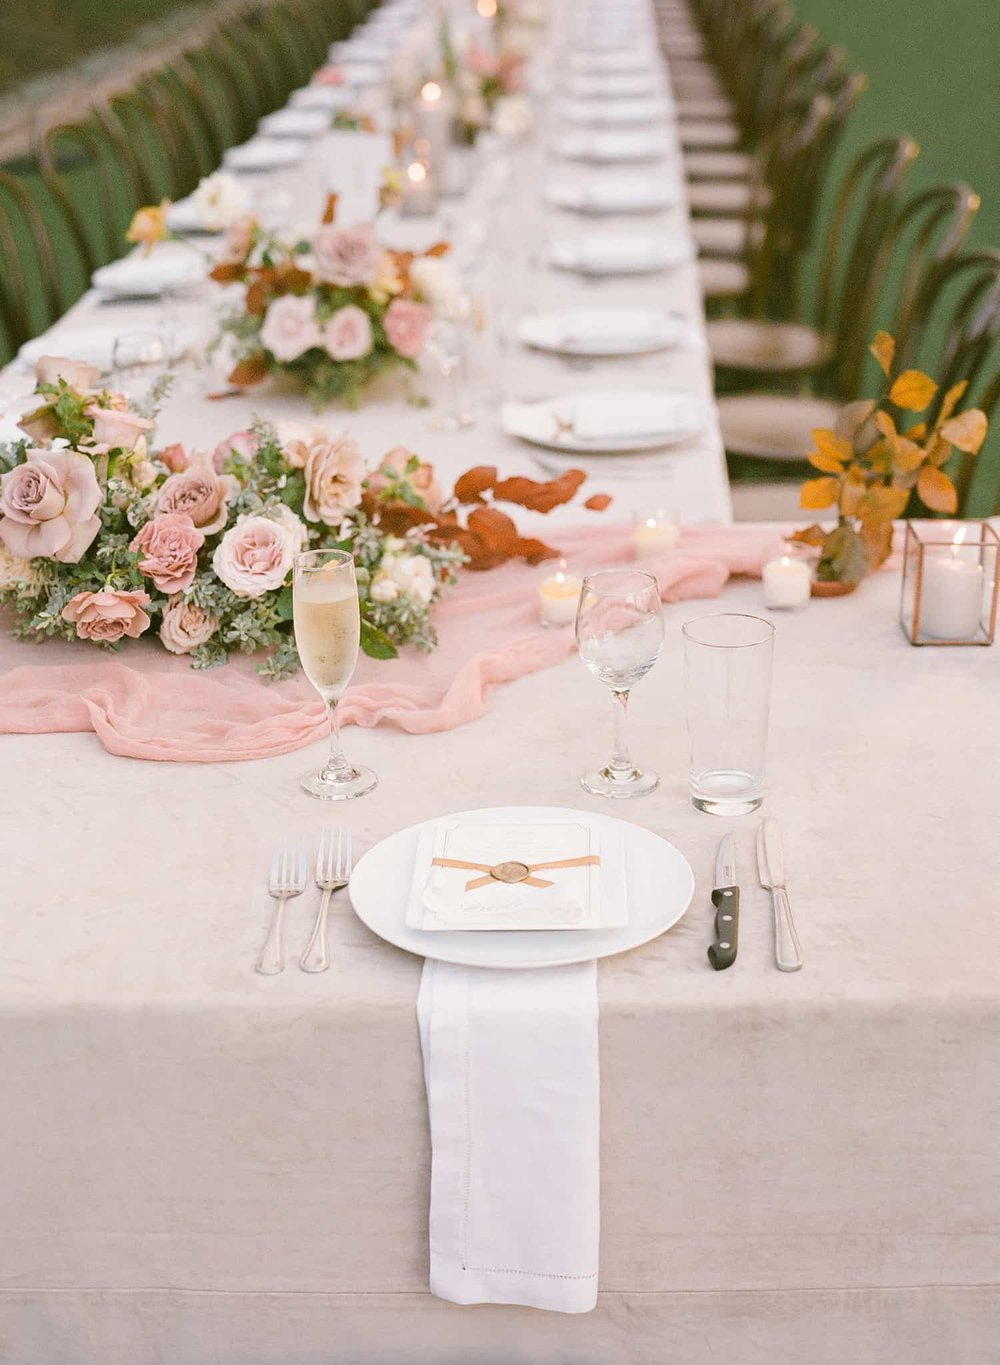 Flower arrangments at wedding reception by Color Theory Collective